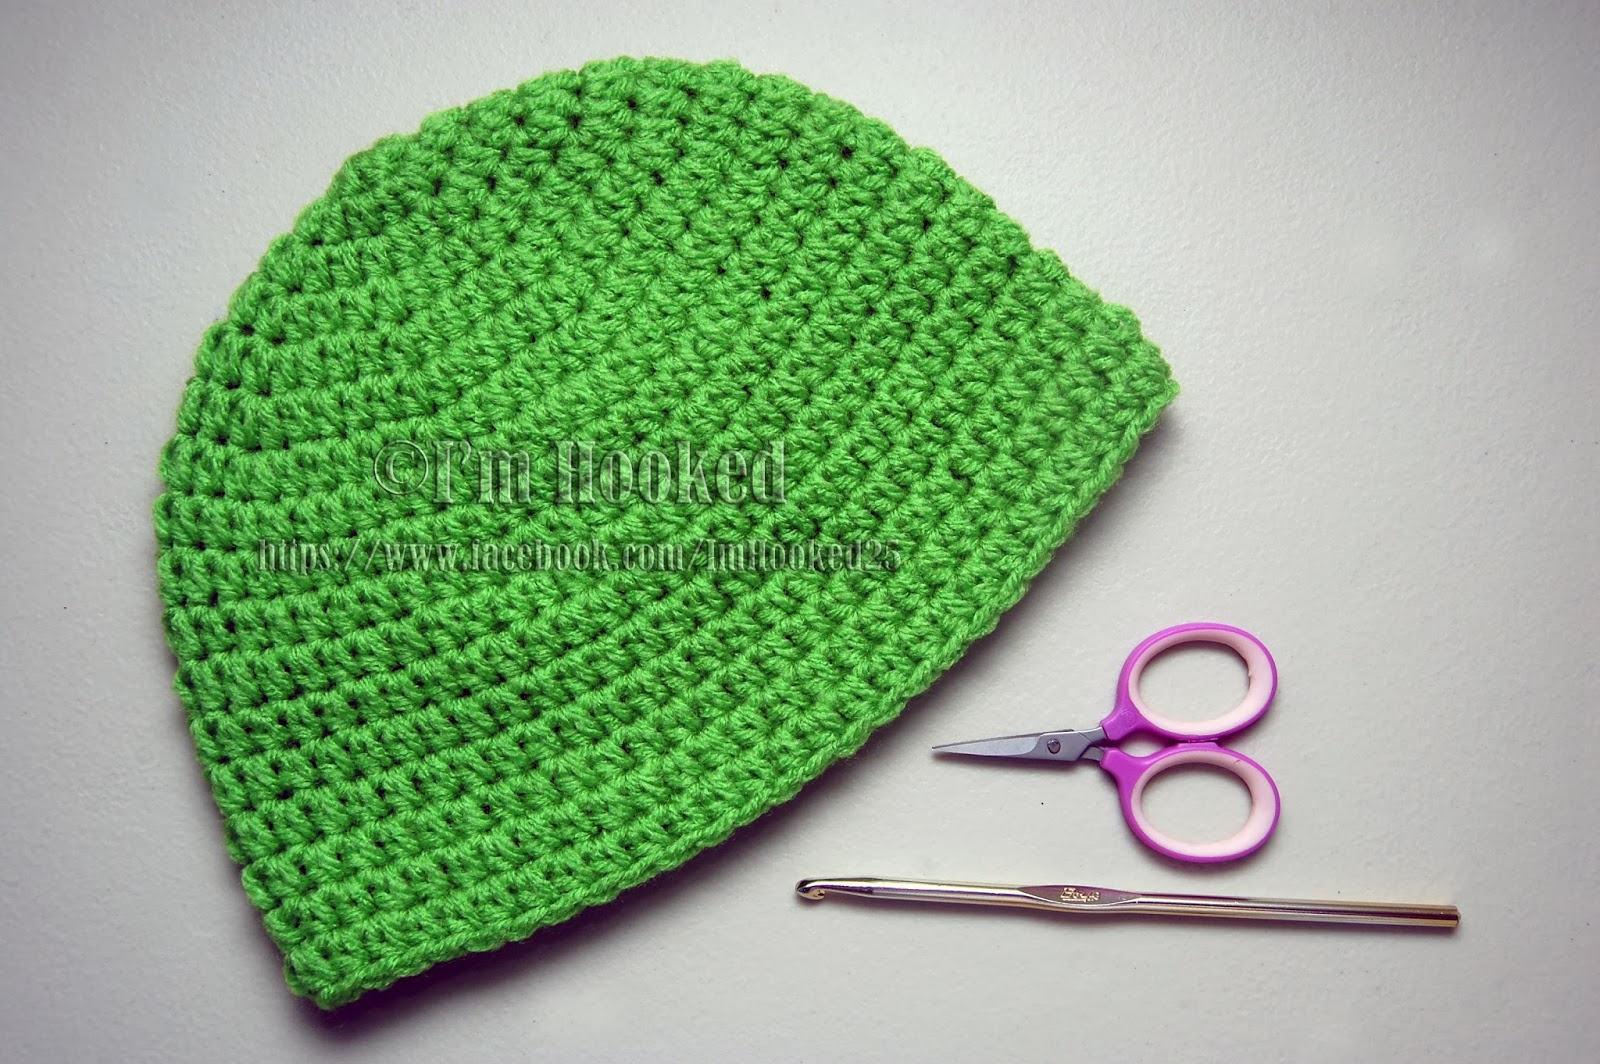 Crochet Beanie Pattern J Hook : Crochet Treasures: Basic Beanie (Half Double Crochet)